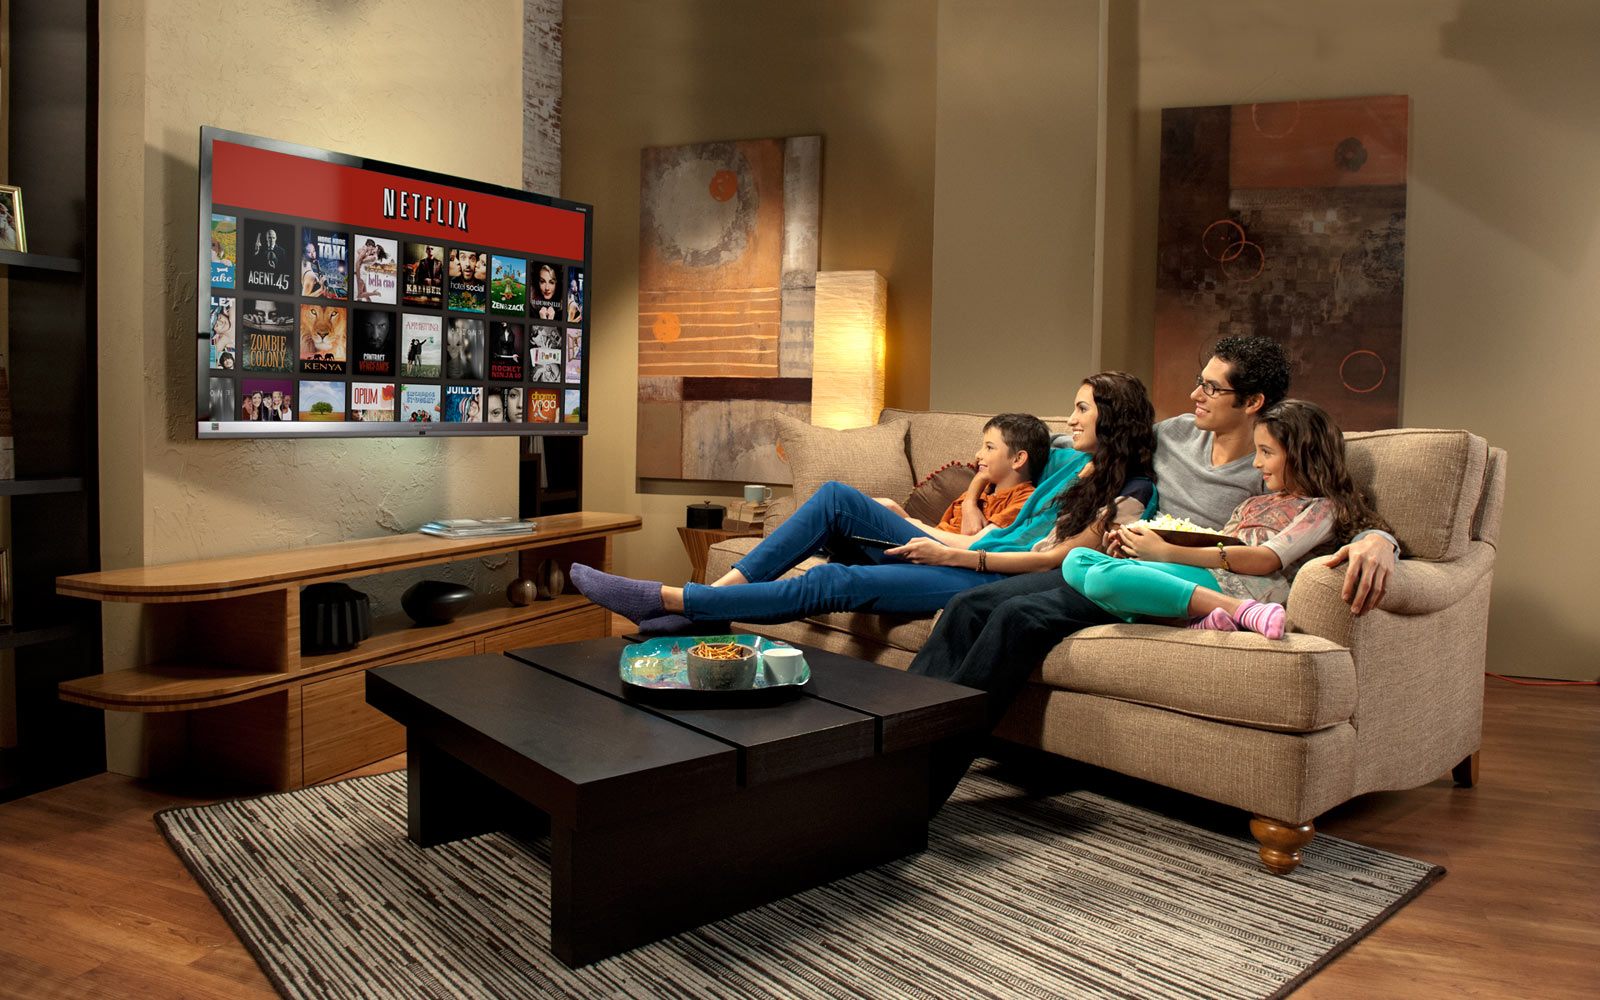 Can You Watch Netflix In 4K On Comcast? - The TV Answer Man!